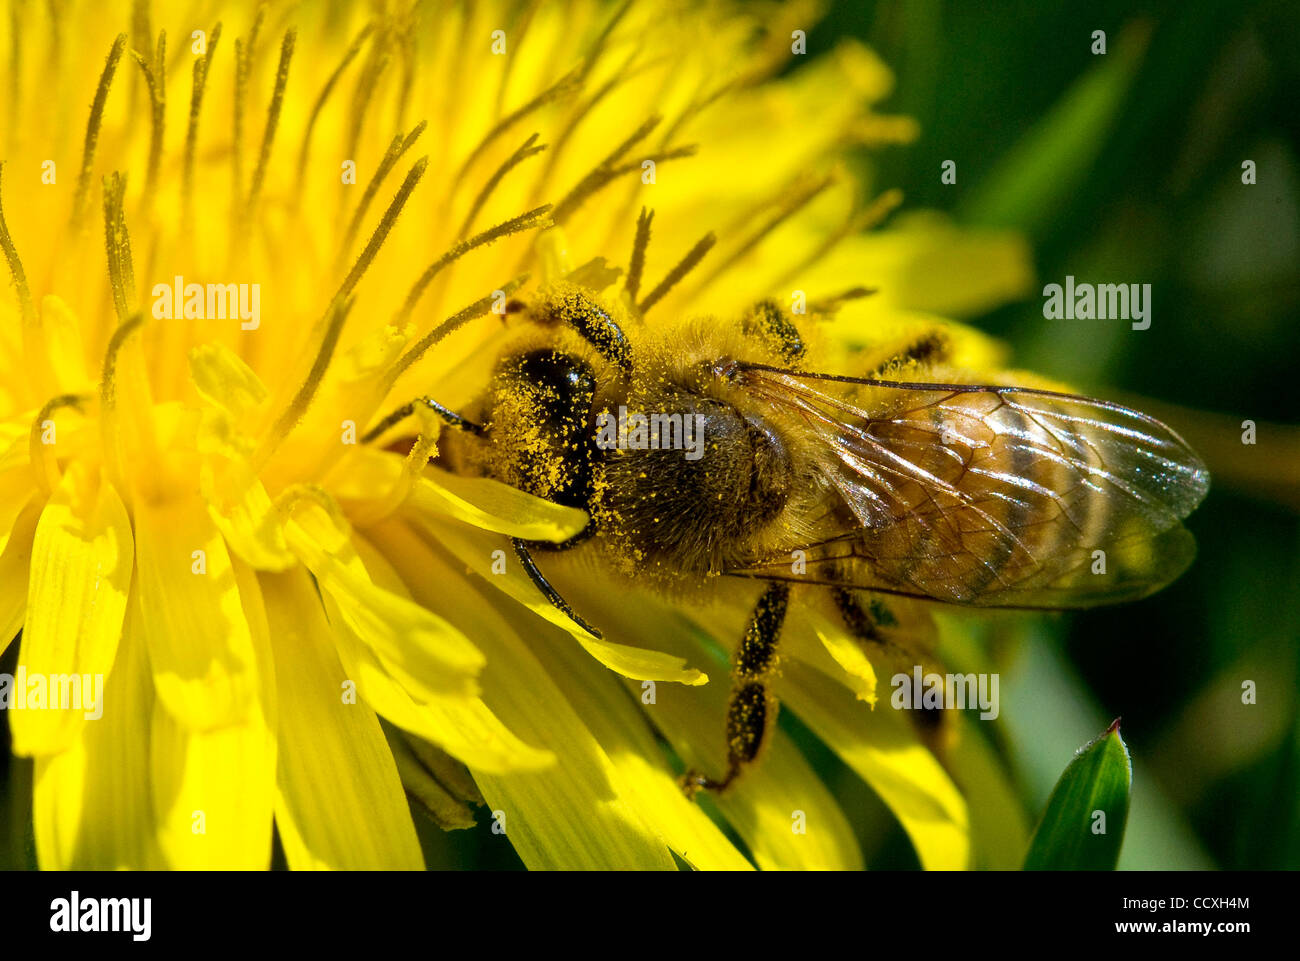 Mar. 18, 2010 - Roseburg, Oregon, U.S. - A small honey bee feeds on a dandelion flower in a county park. The honey - Stock Image